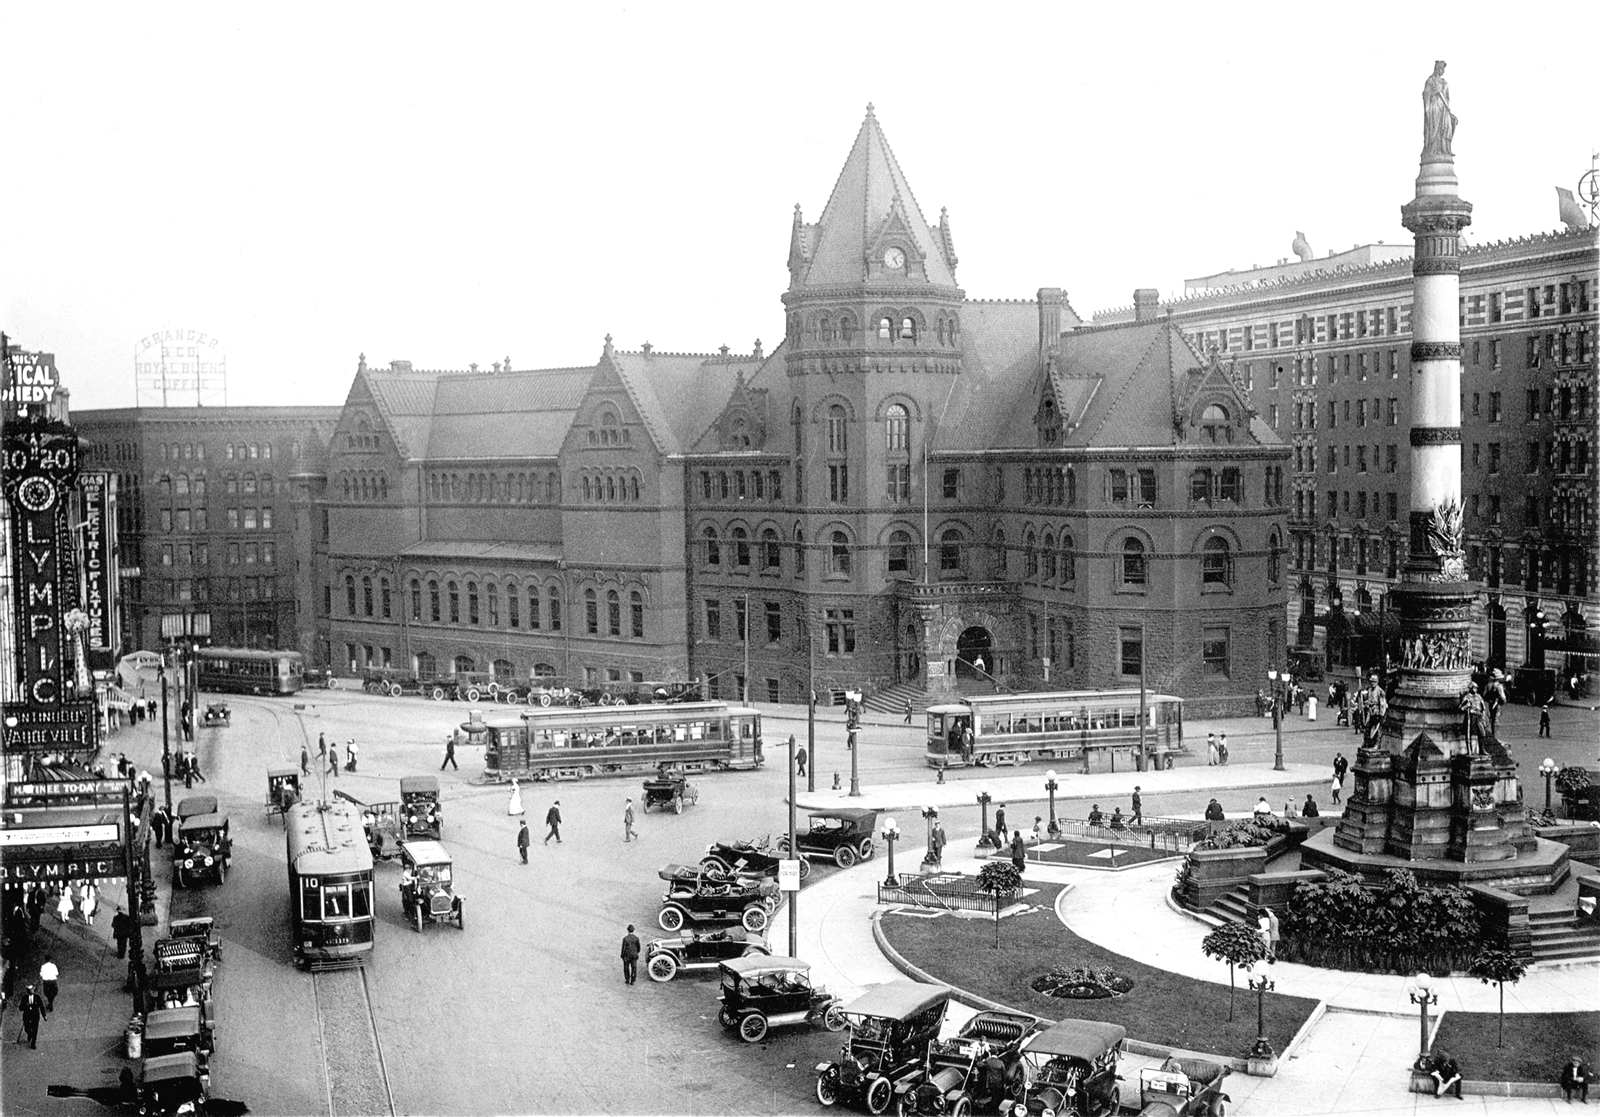 This photo from the Buffalo & Erie County Public Library archives shows Lafayette Square as it looked around 1916. Notice the streetcars and the original Buffalo Library, which was dedicated in 1887 and in service until 1963.